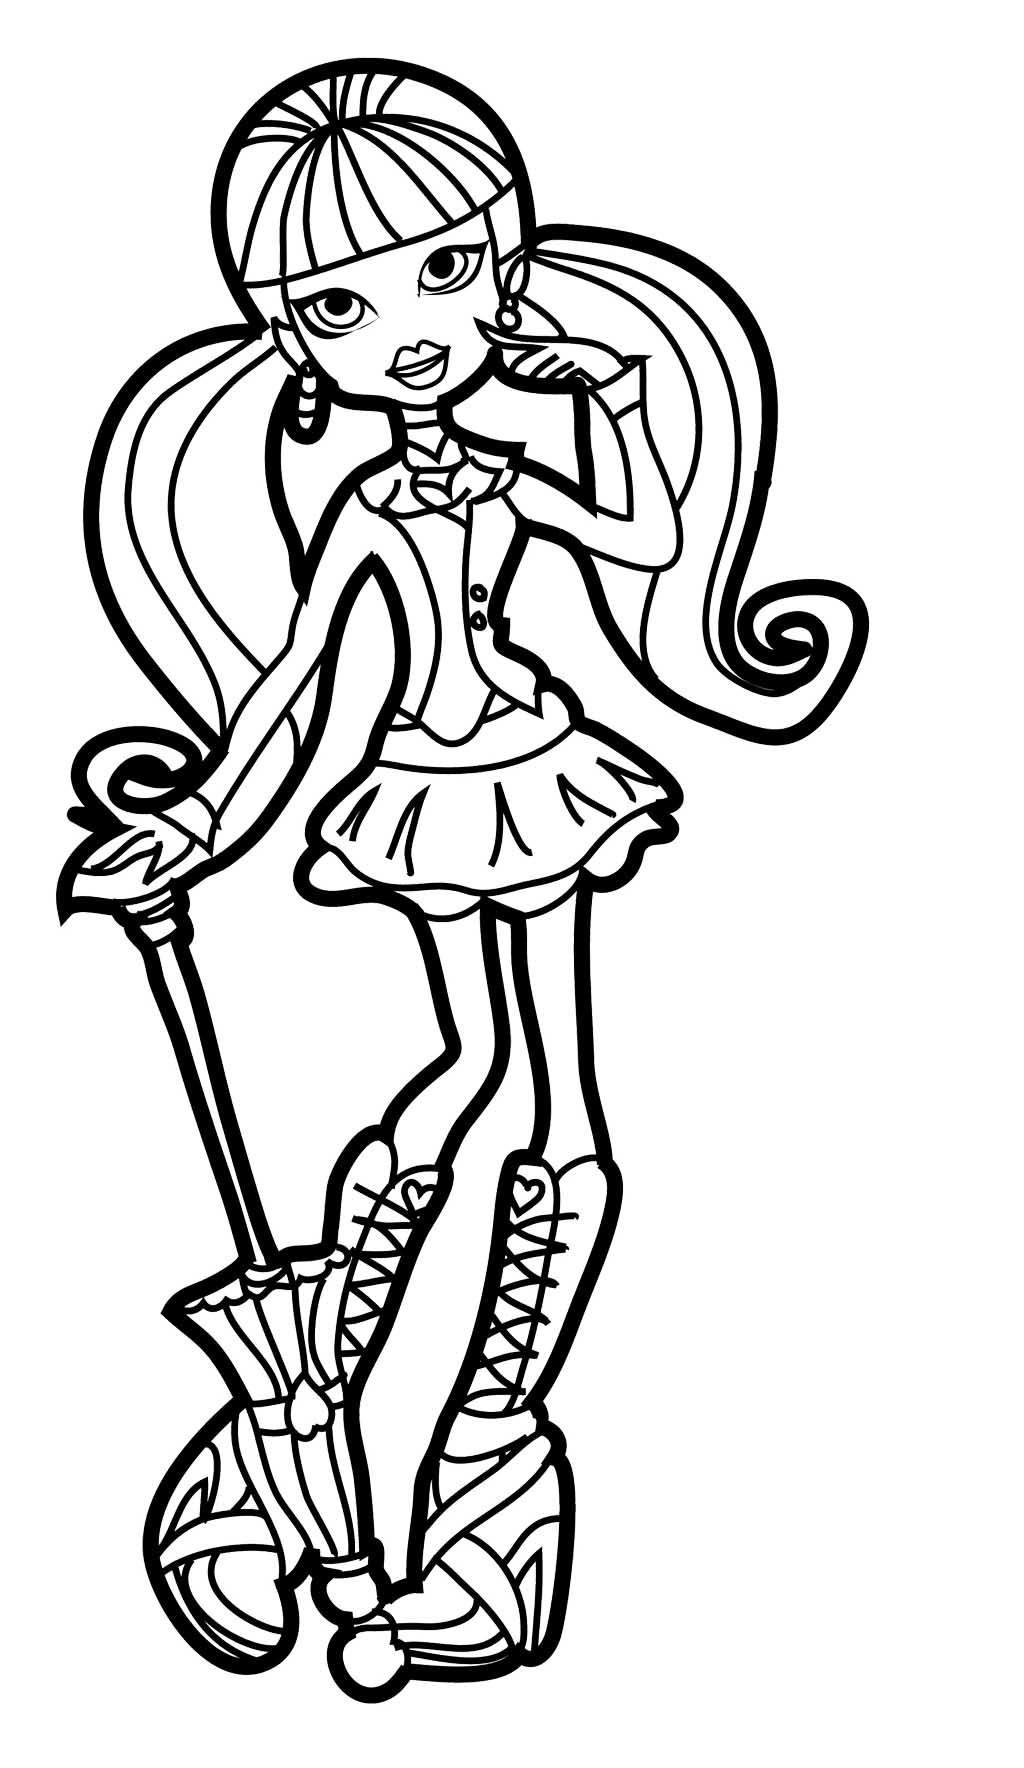 monster high drawing pictures the best free printing drawing images download from 609 high monster pictures drawing